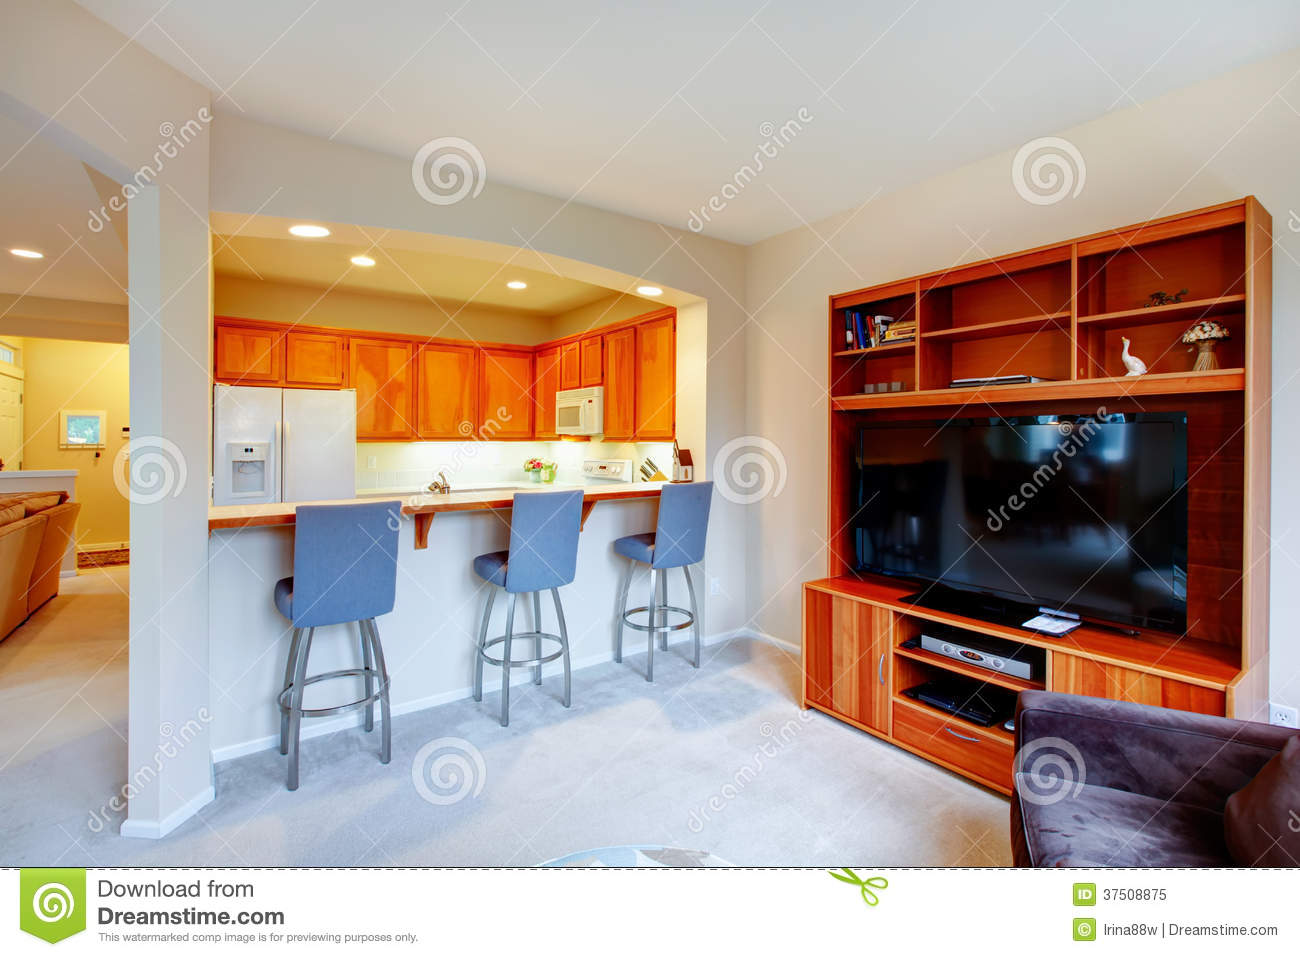 Great Design For House With An Open Wall Between Kitchen